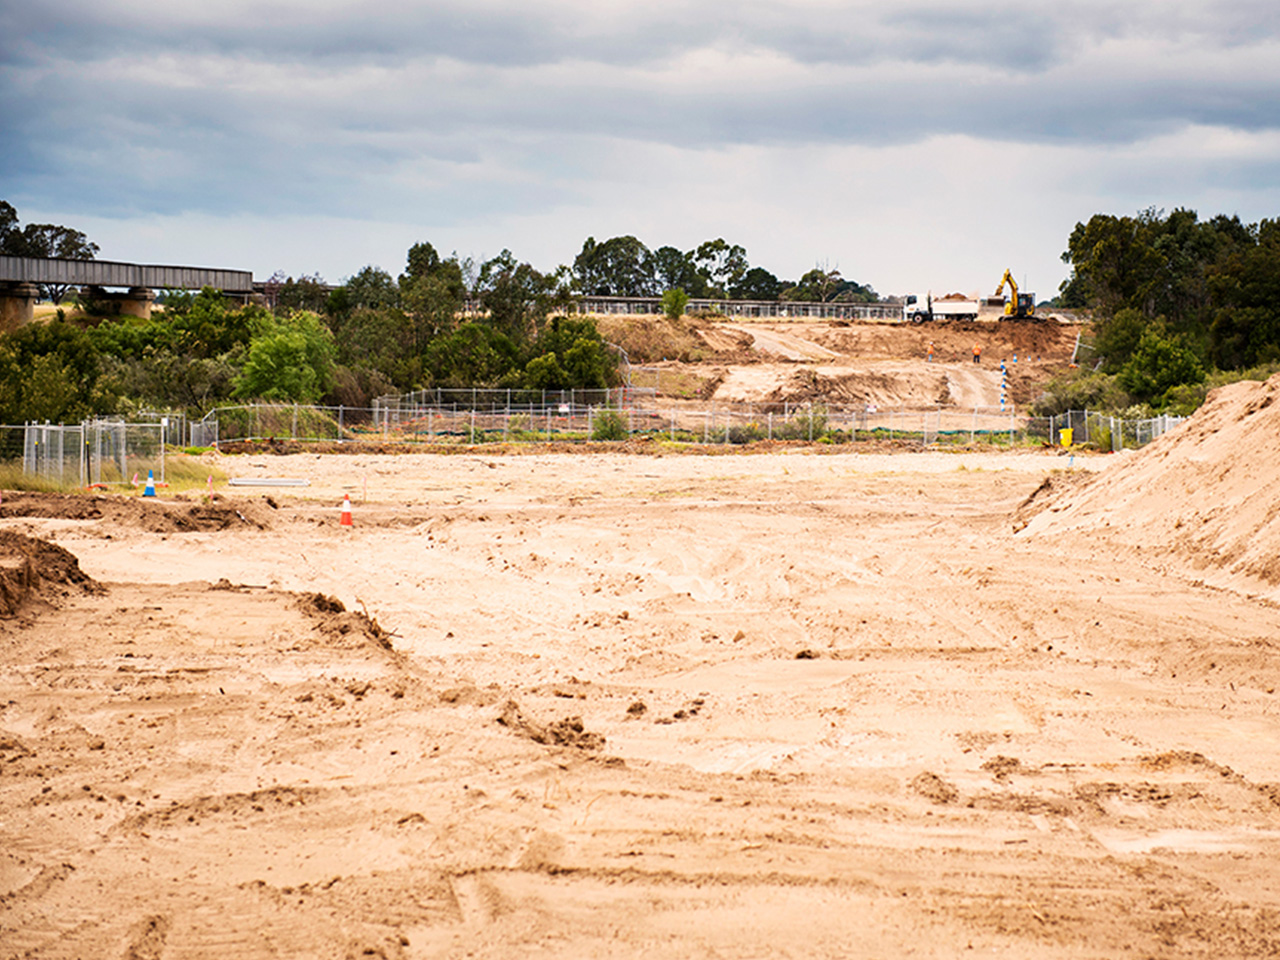 Construction begins with ground works